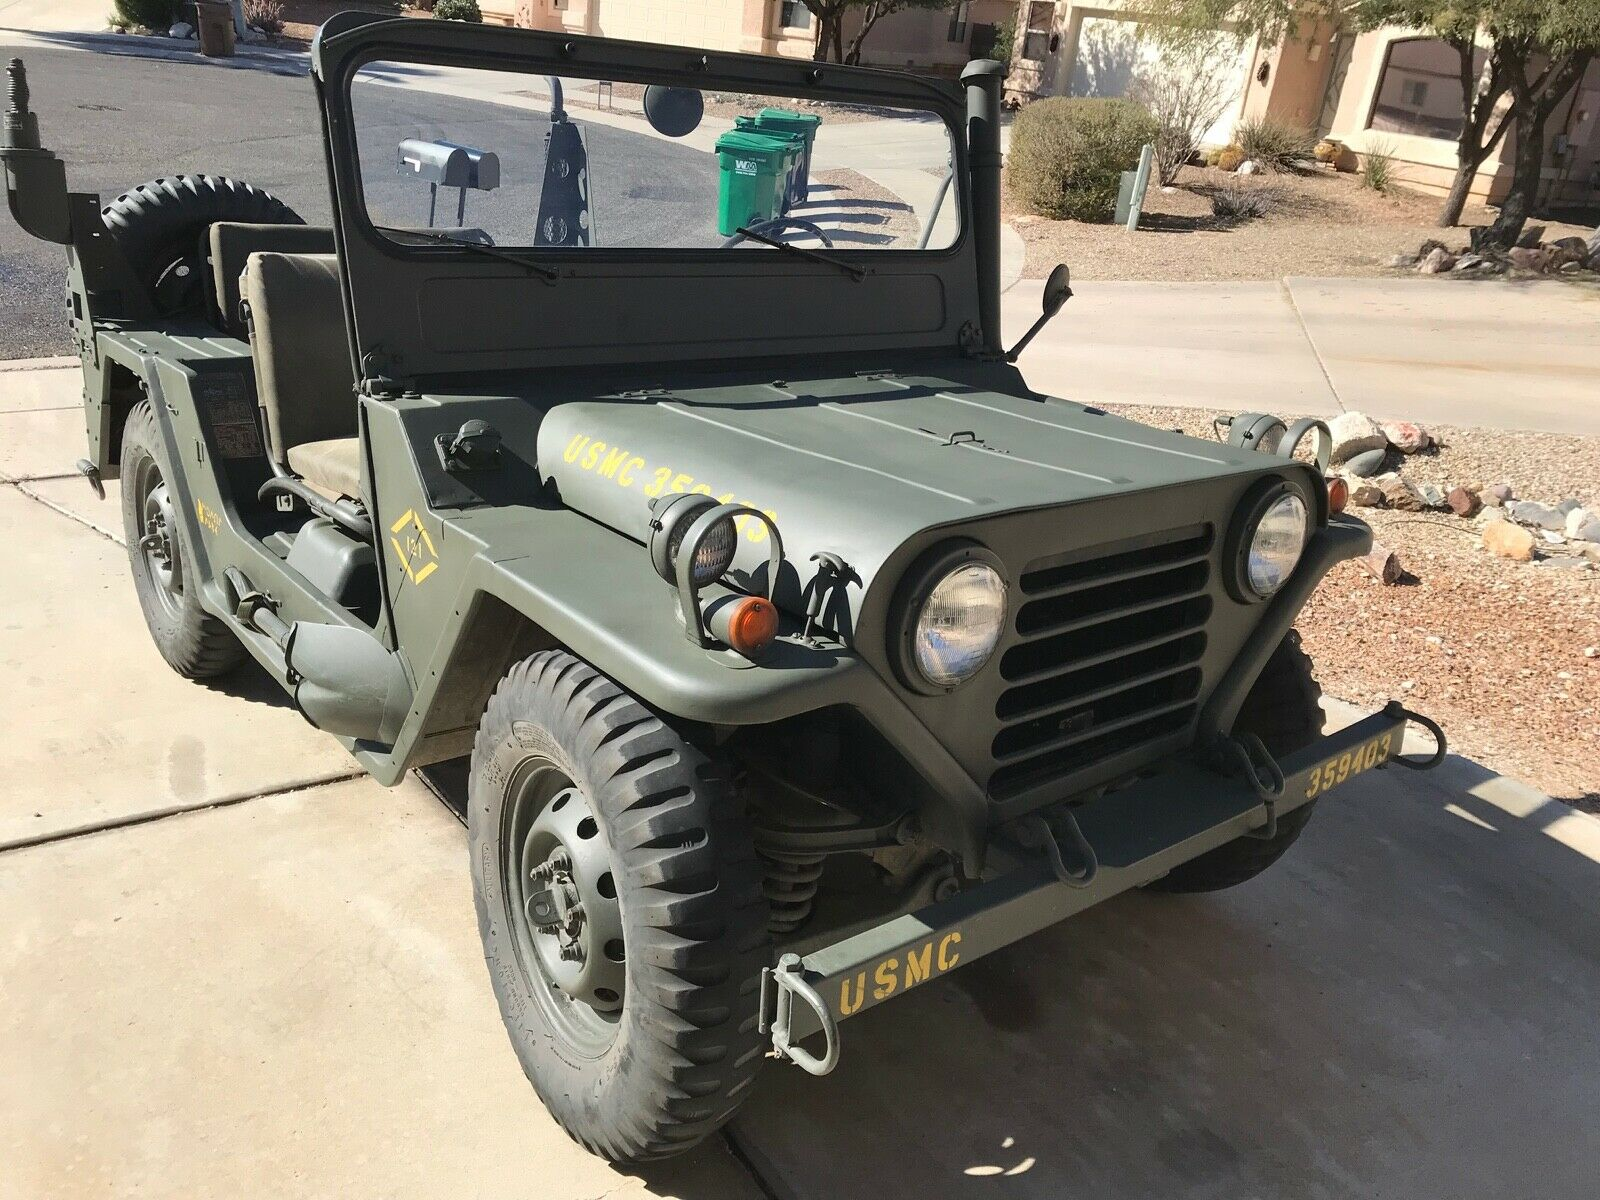 rebuilt 1966 Ford M151a1 MUTT Military for sale